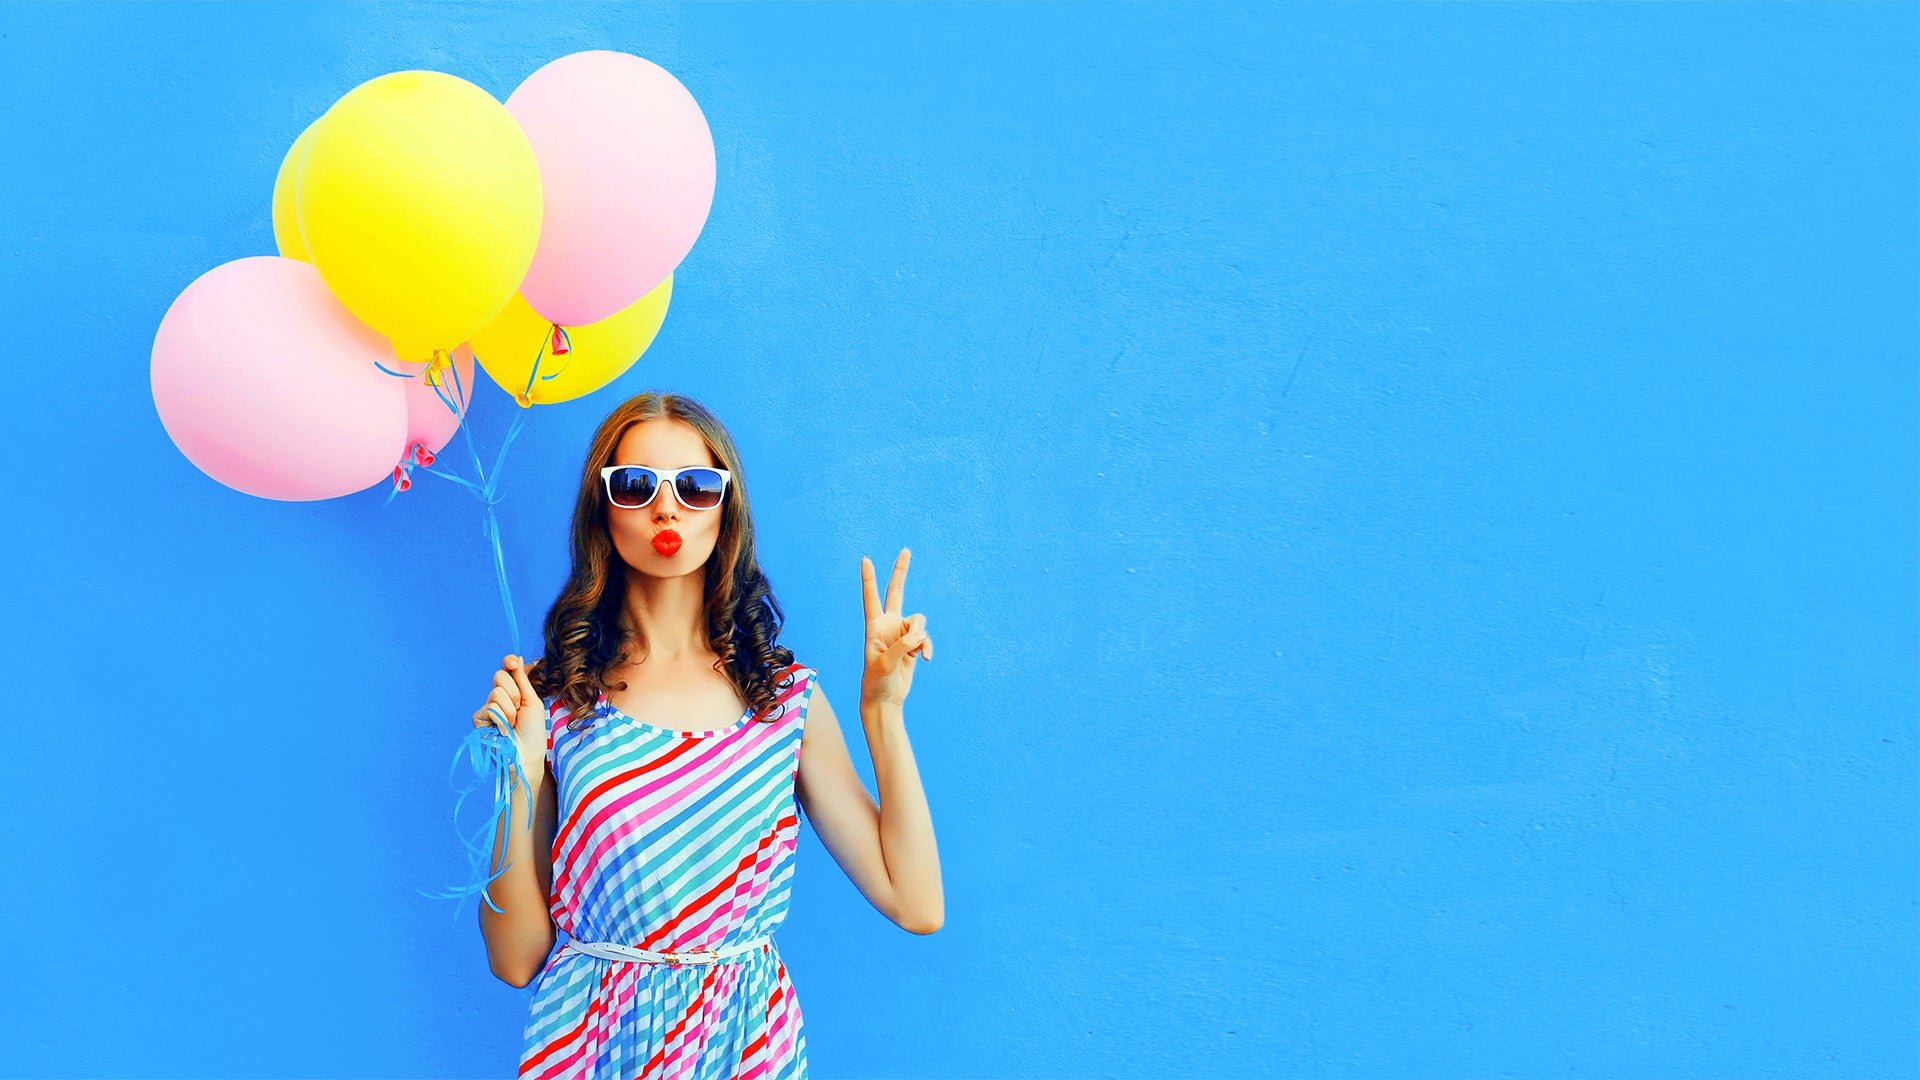 Woman holding colorful balloons against blue wall